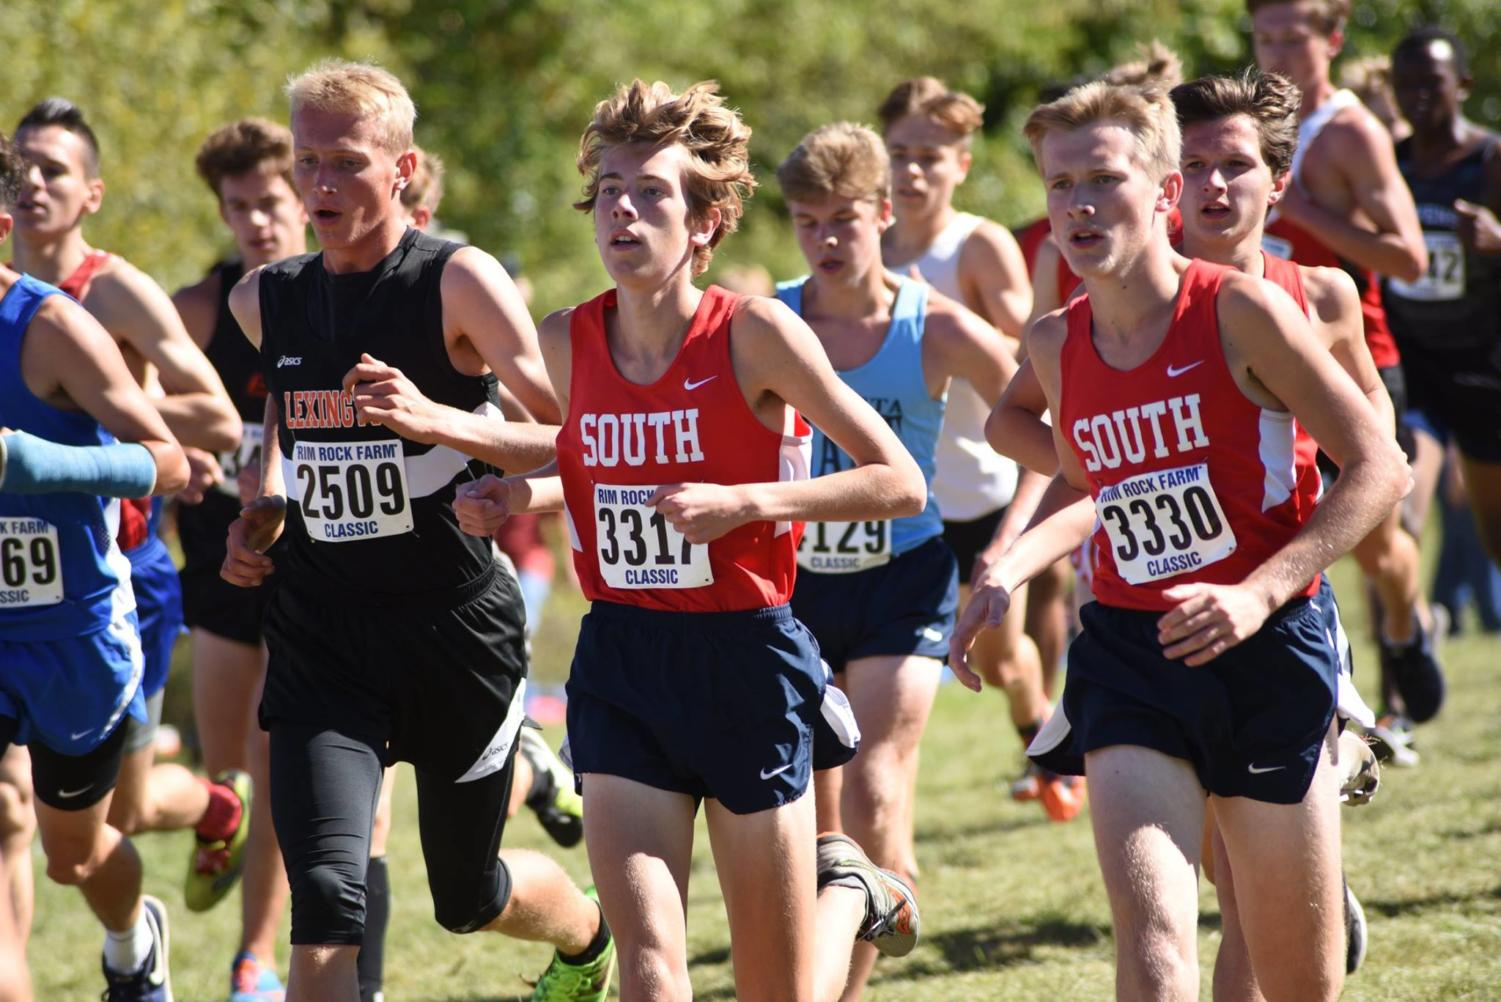 (L to R) Eric Boles, Daniel Tabaka, (off Tabaka's left shoulder, to the right in photo in red) and James Stone run together in the first mile of the Rim Rock Farm Classic in Lawrence, Kansas Sept. 22.  South finished twelfth in a field of thirty-five.